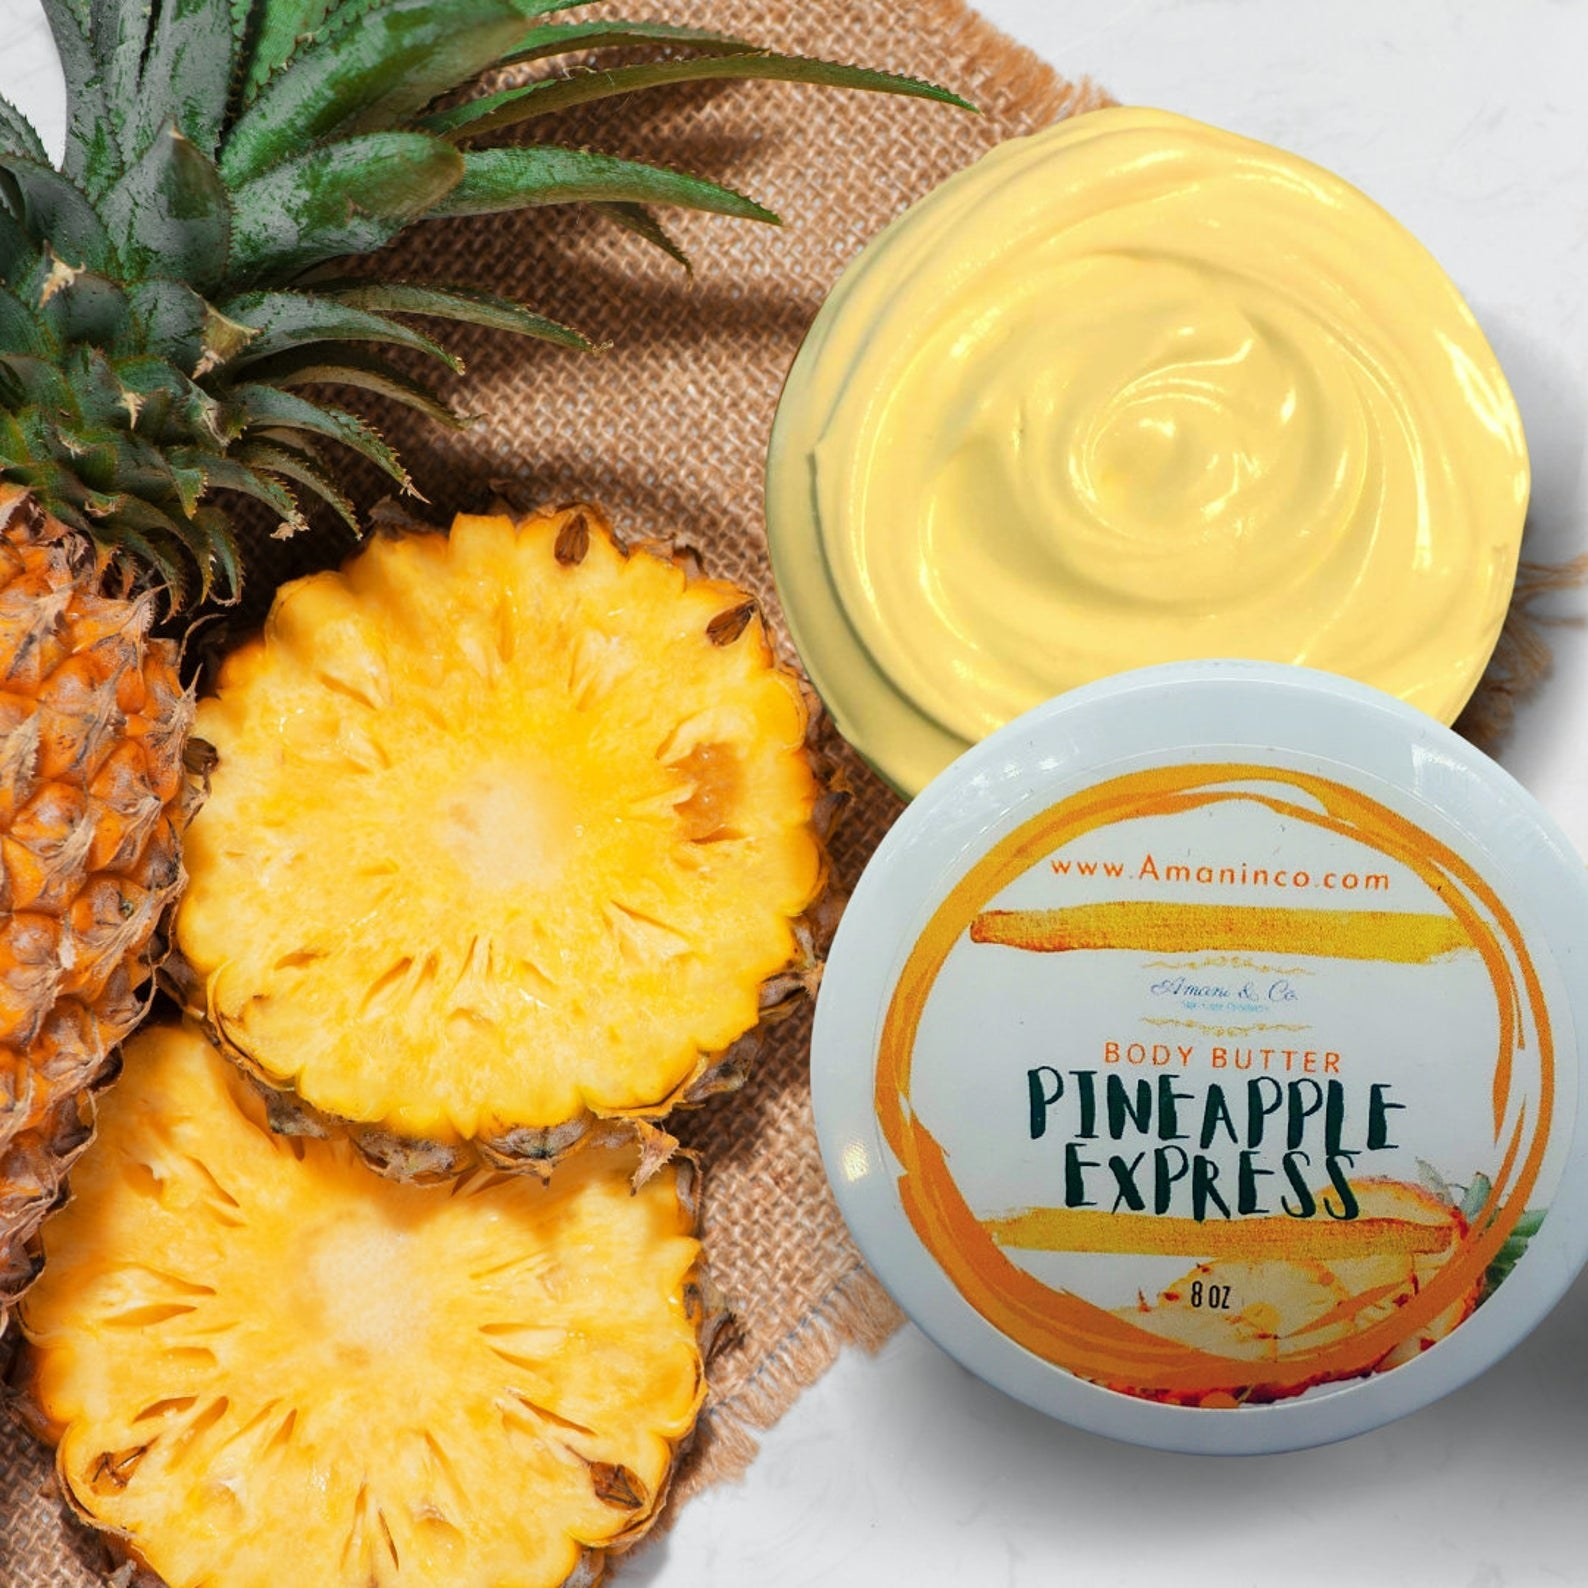 jar of body butter plus slices of a full pineapple